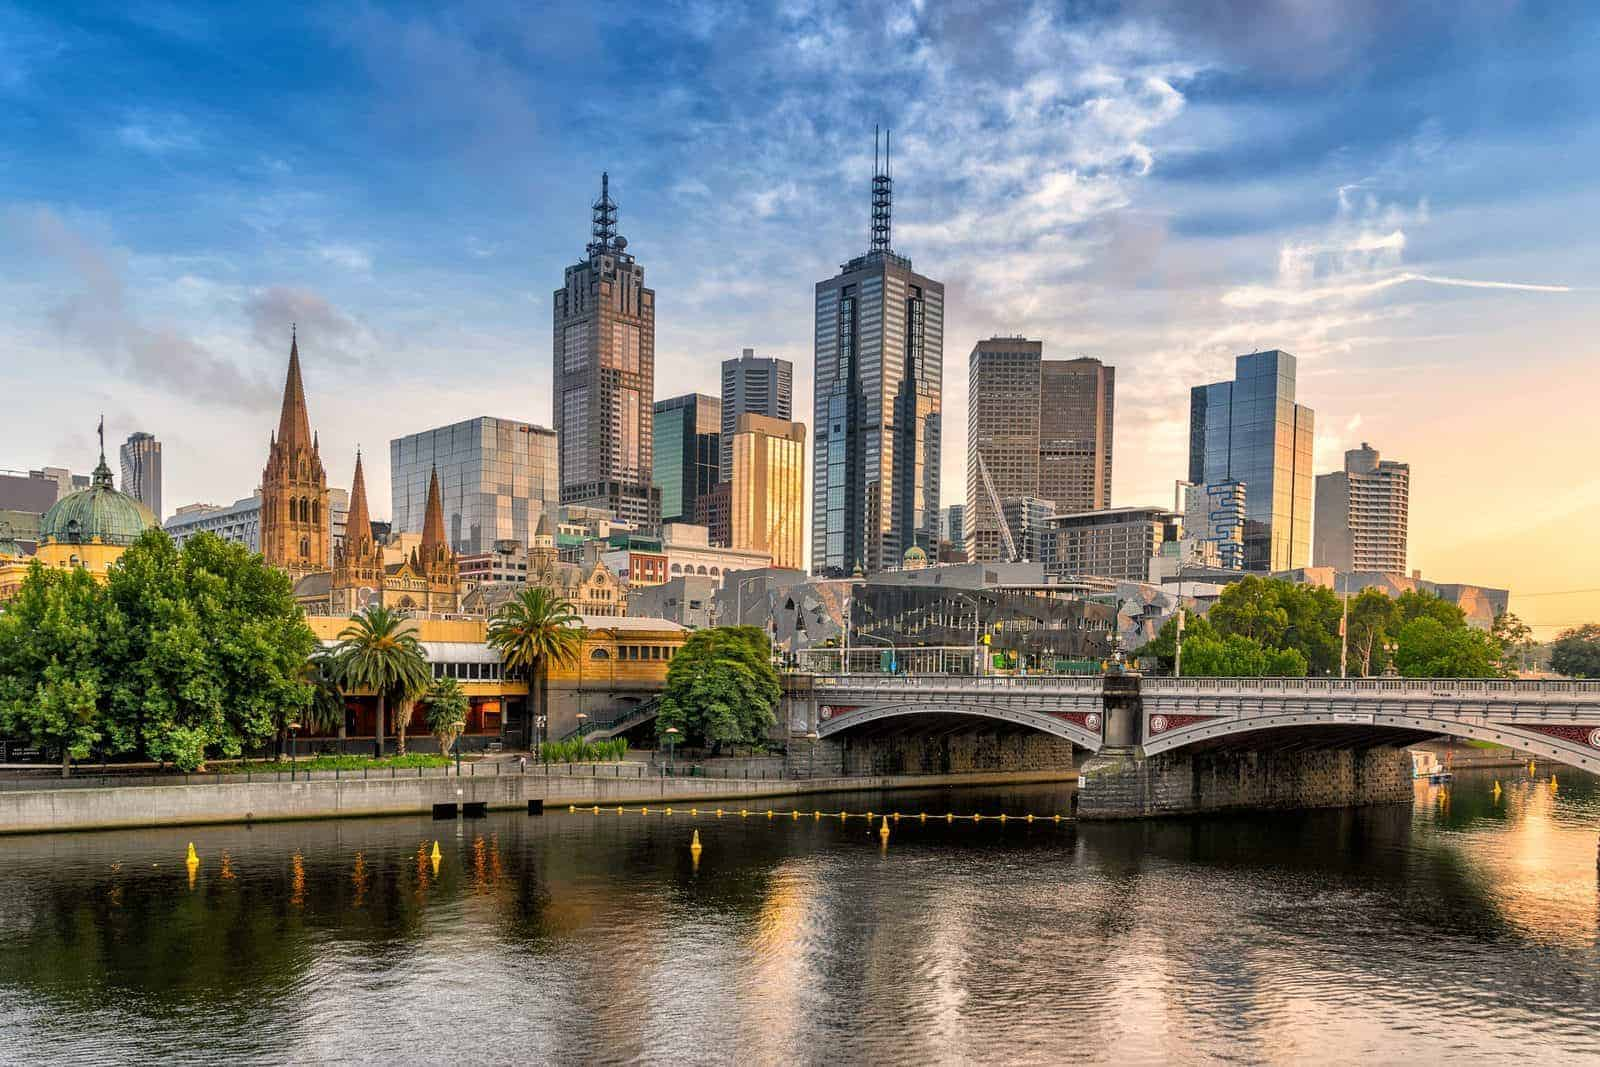 Expat Australia: How to Find a Great Job in Australia and Get an Employer-Sponsored Visa